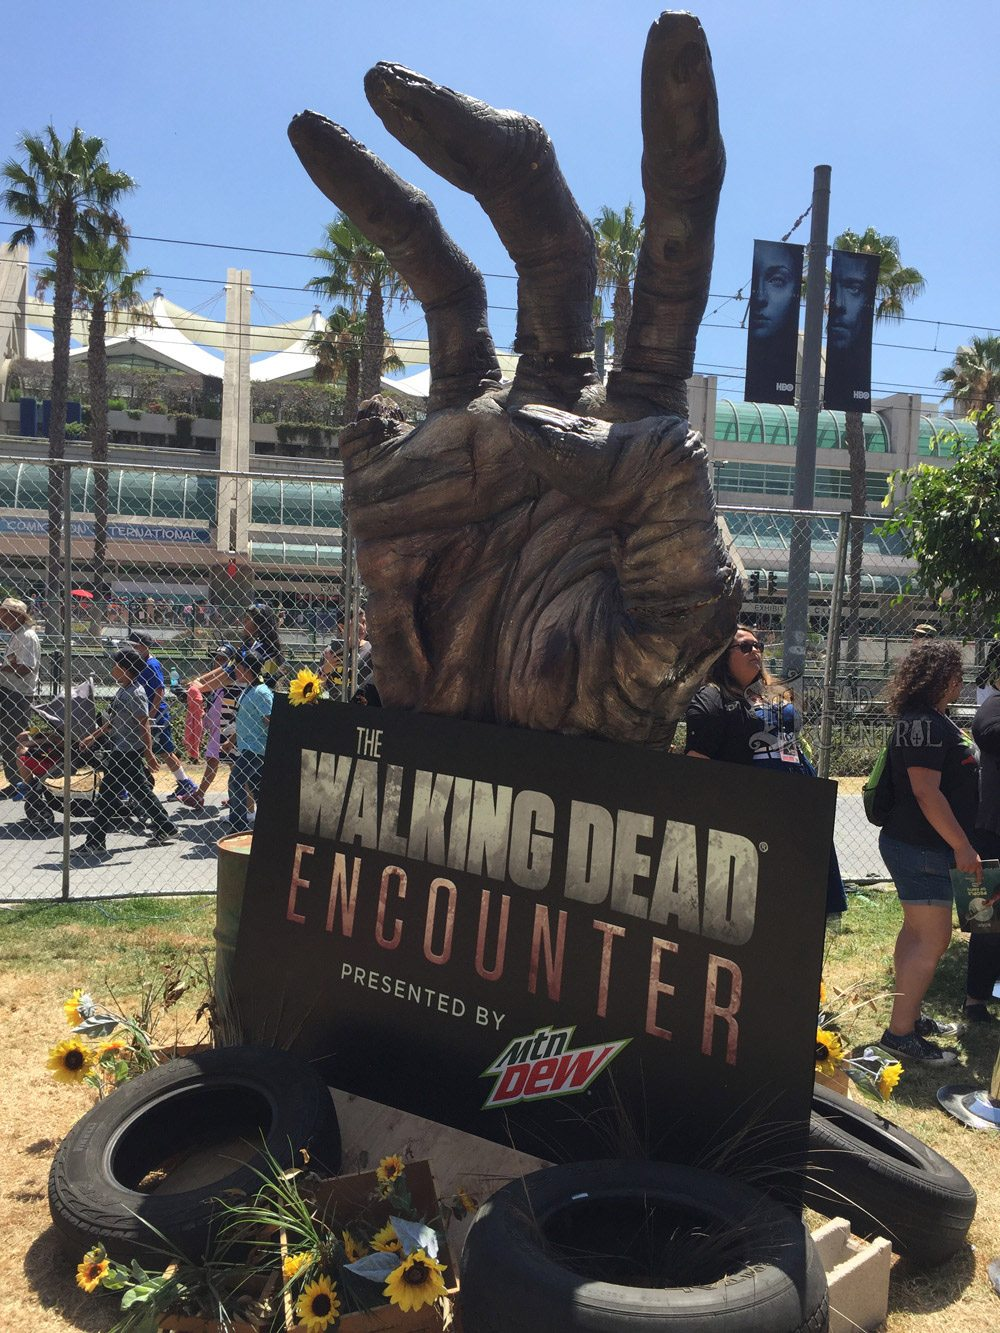 twd dq 2 - #SDCC17: We Took on The Walking Dead Encounter and Lived to Tell About It!